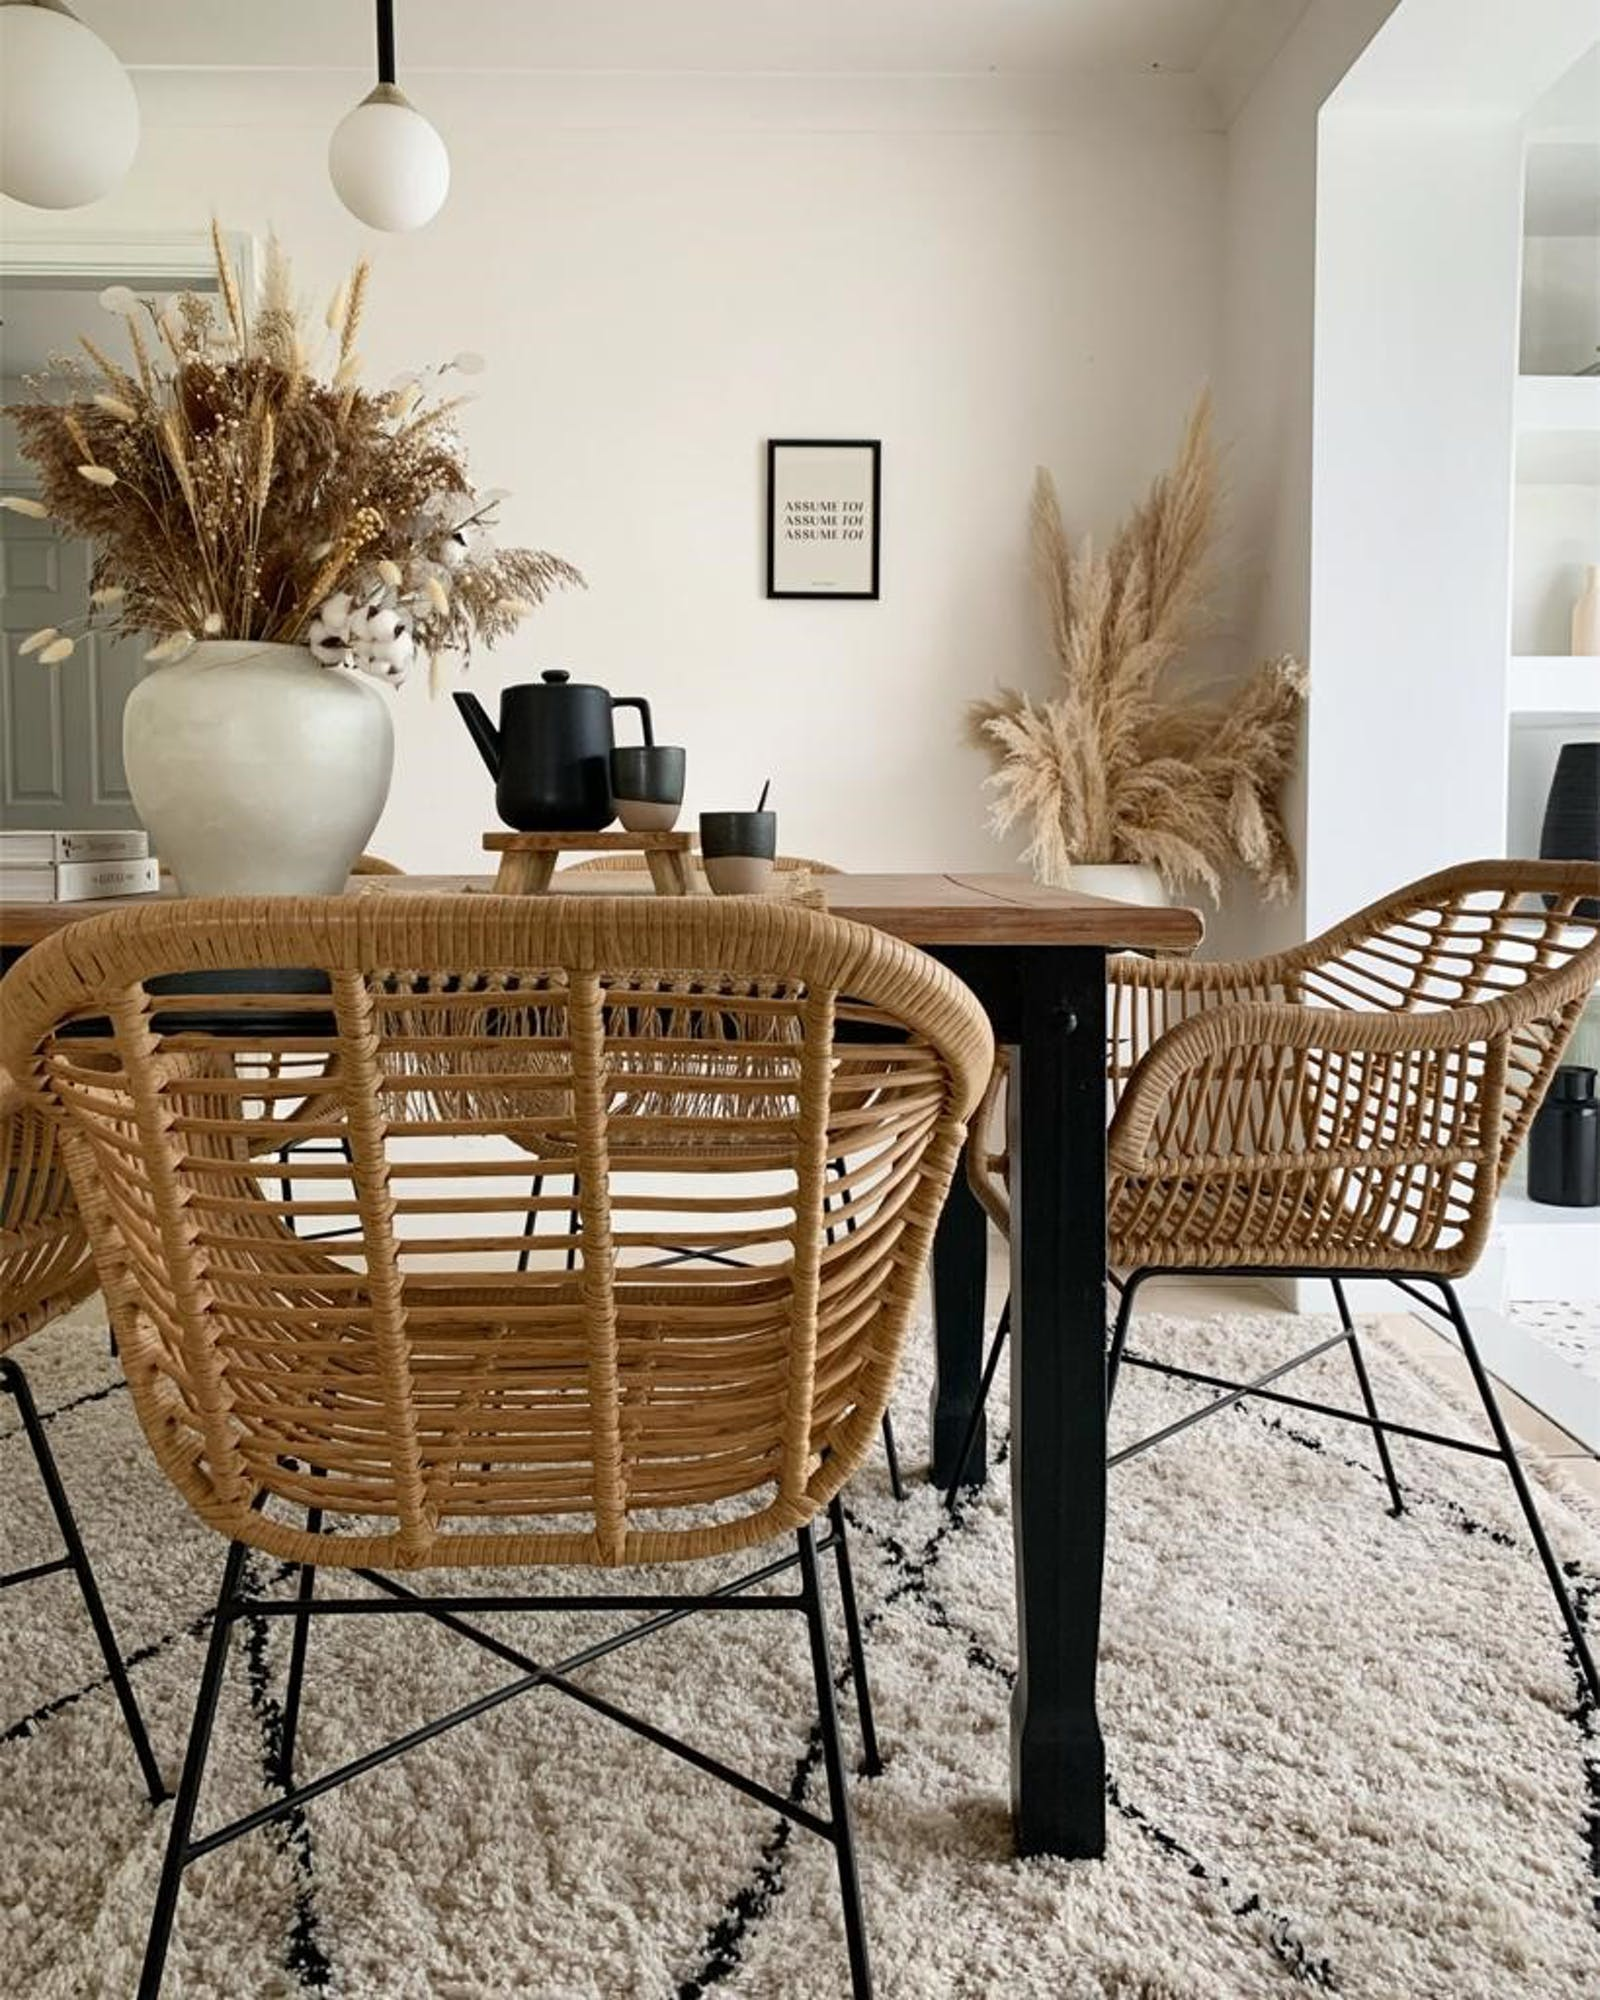 Wooden dining table with rattan chairs and dried foliage in vases